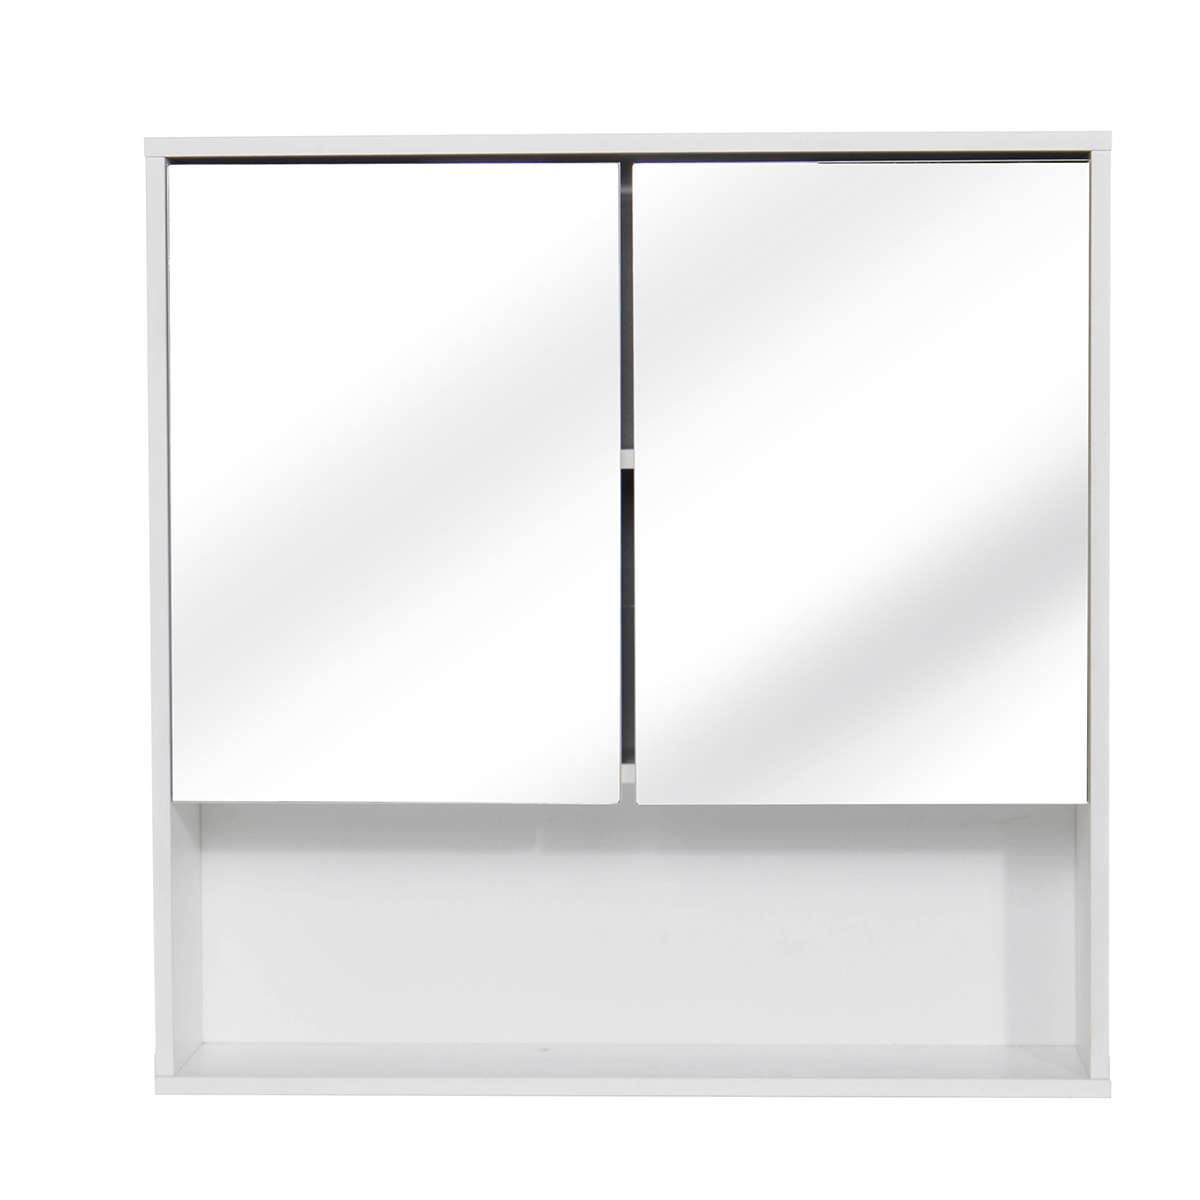 60x60cm Bathroom Cabinet Wall Mounted Bathroom Mirror CabinetsToilet Furniture  Cupboard Shelf Storager Modern Style UK Stock